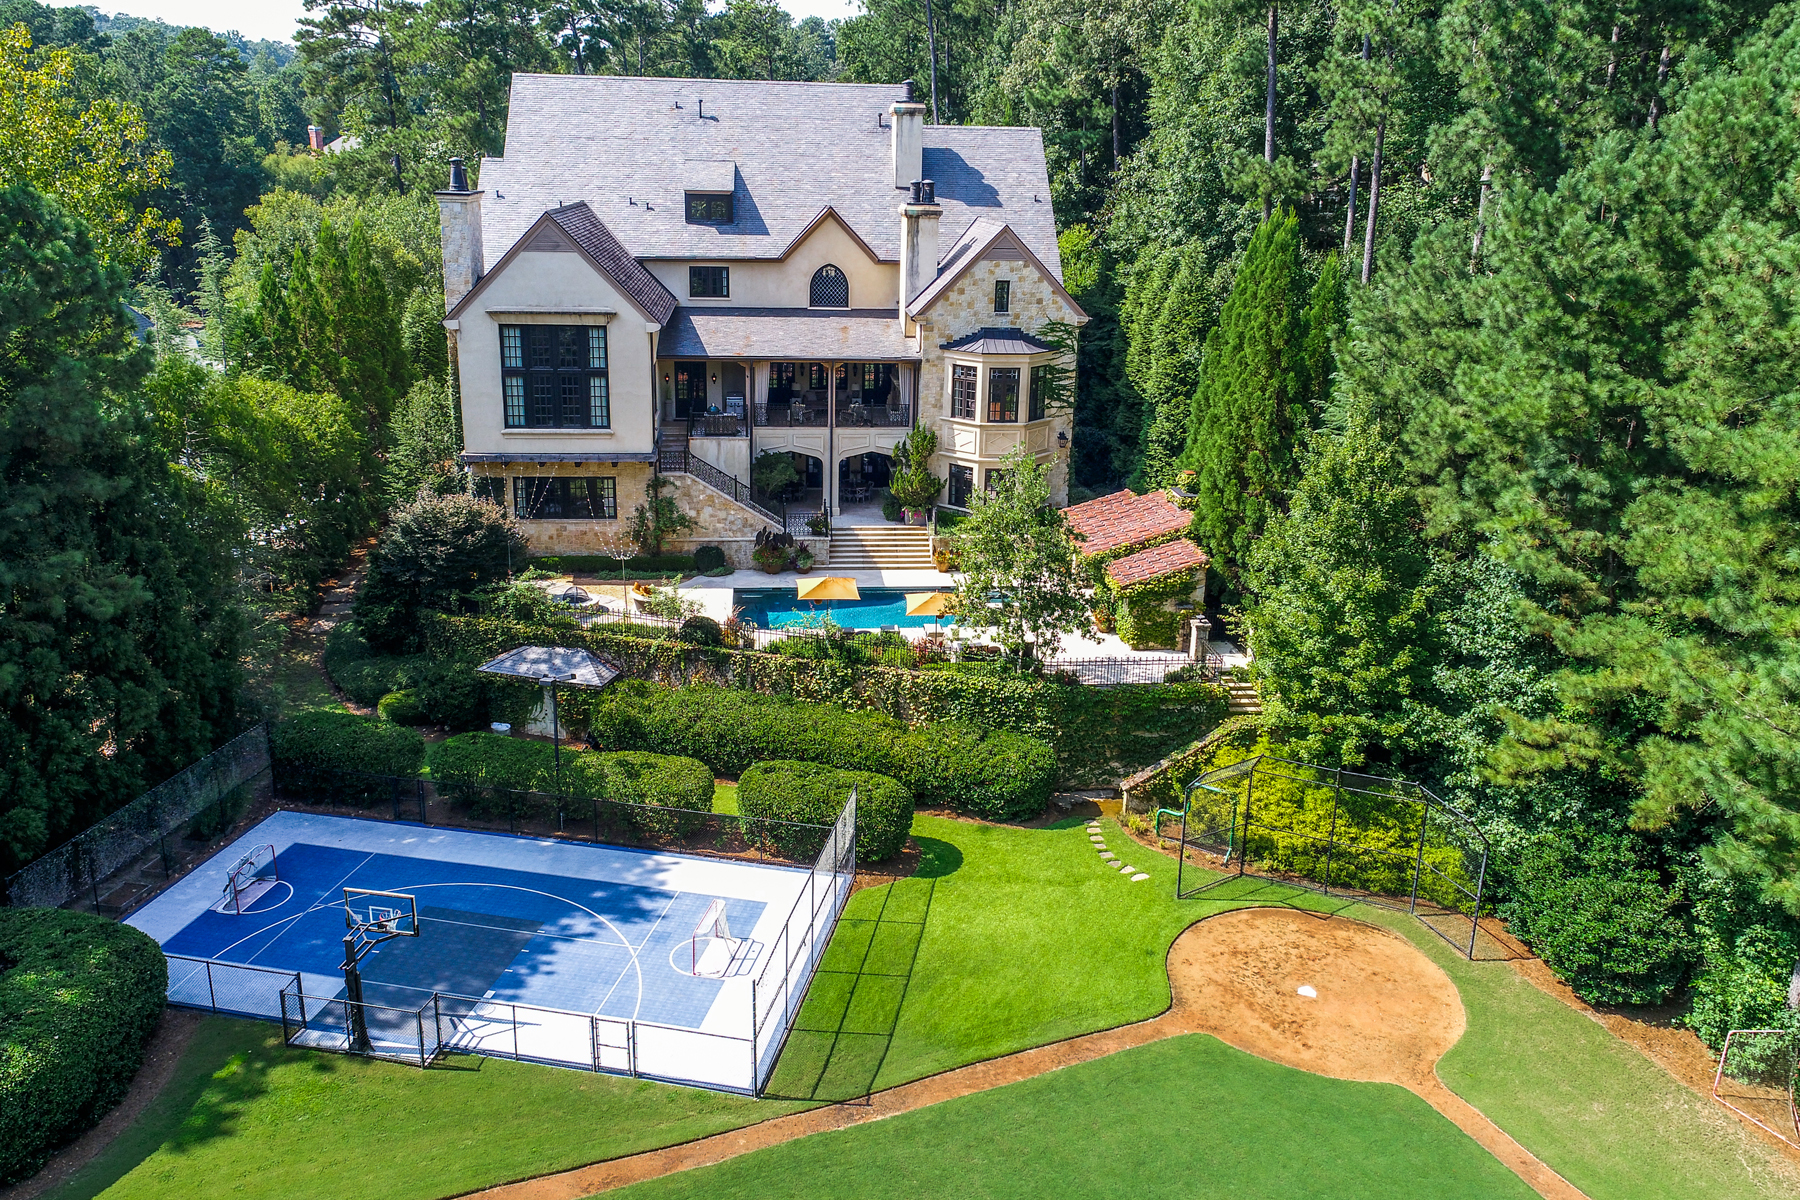 Single Family Home for Sale at Extraordinary Field Of Dreams Legacy Family Estate 910 Hurleston Lane Johns Creek, Georgia 30022 United States